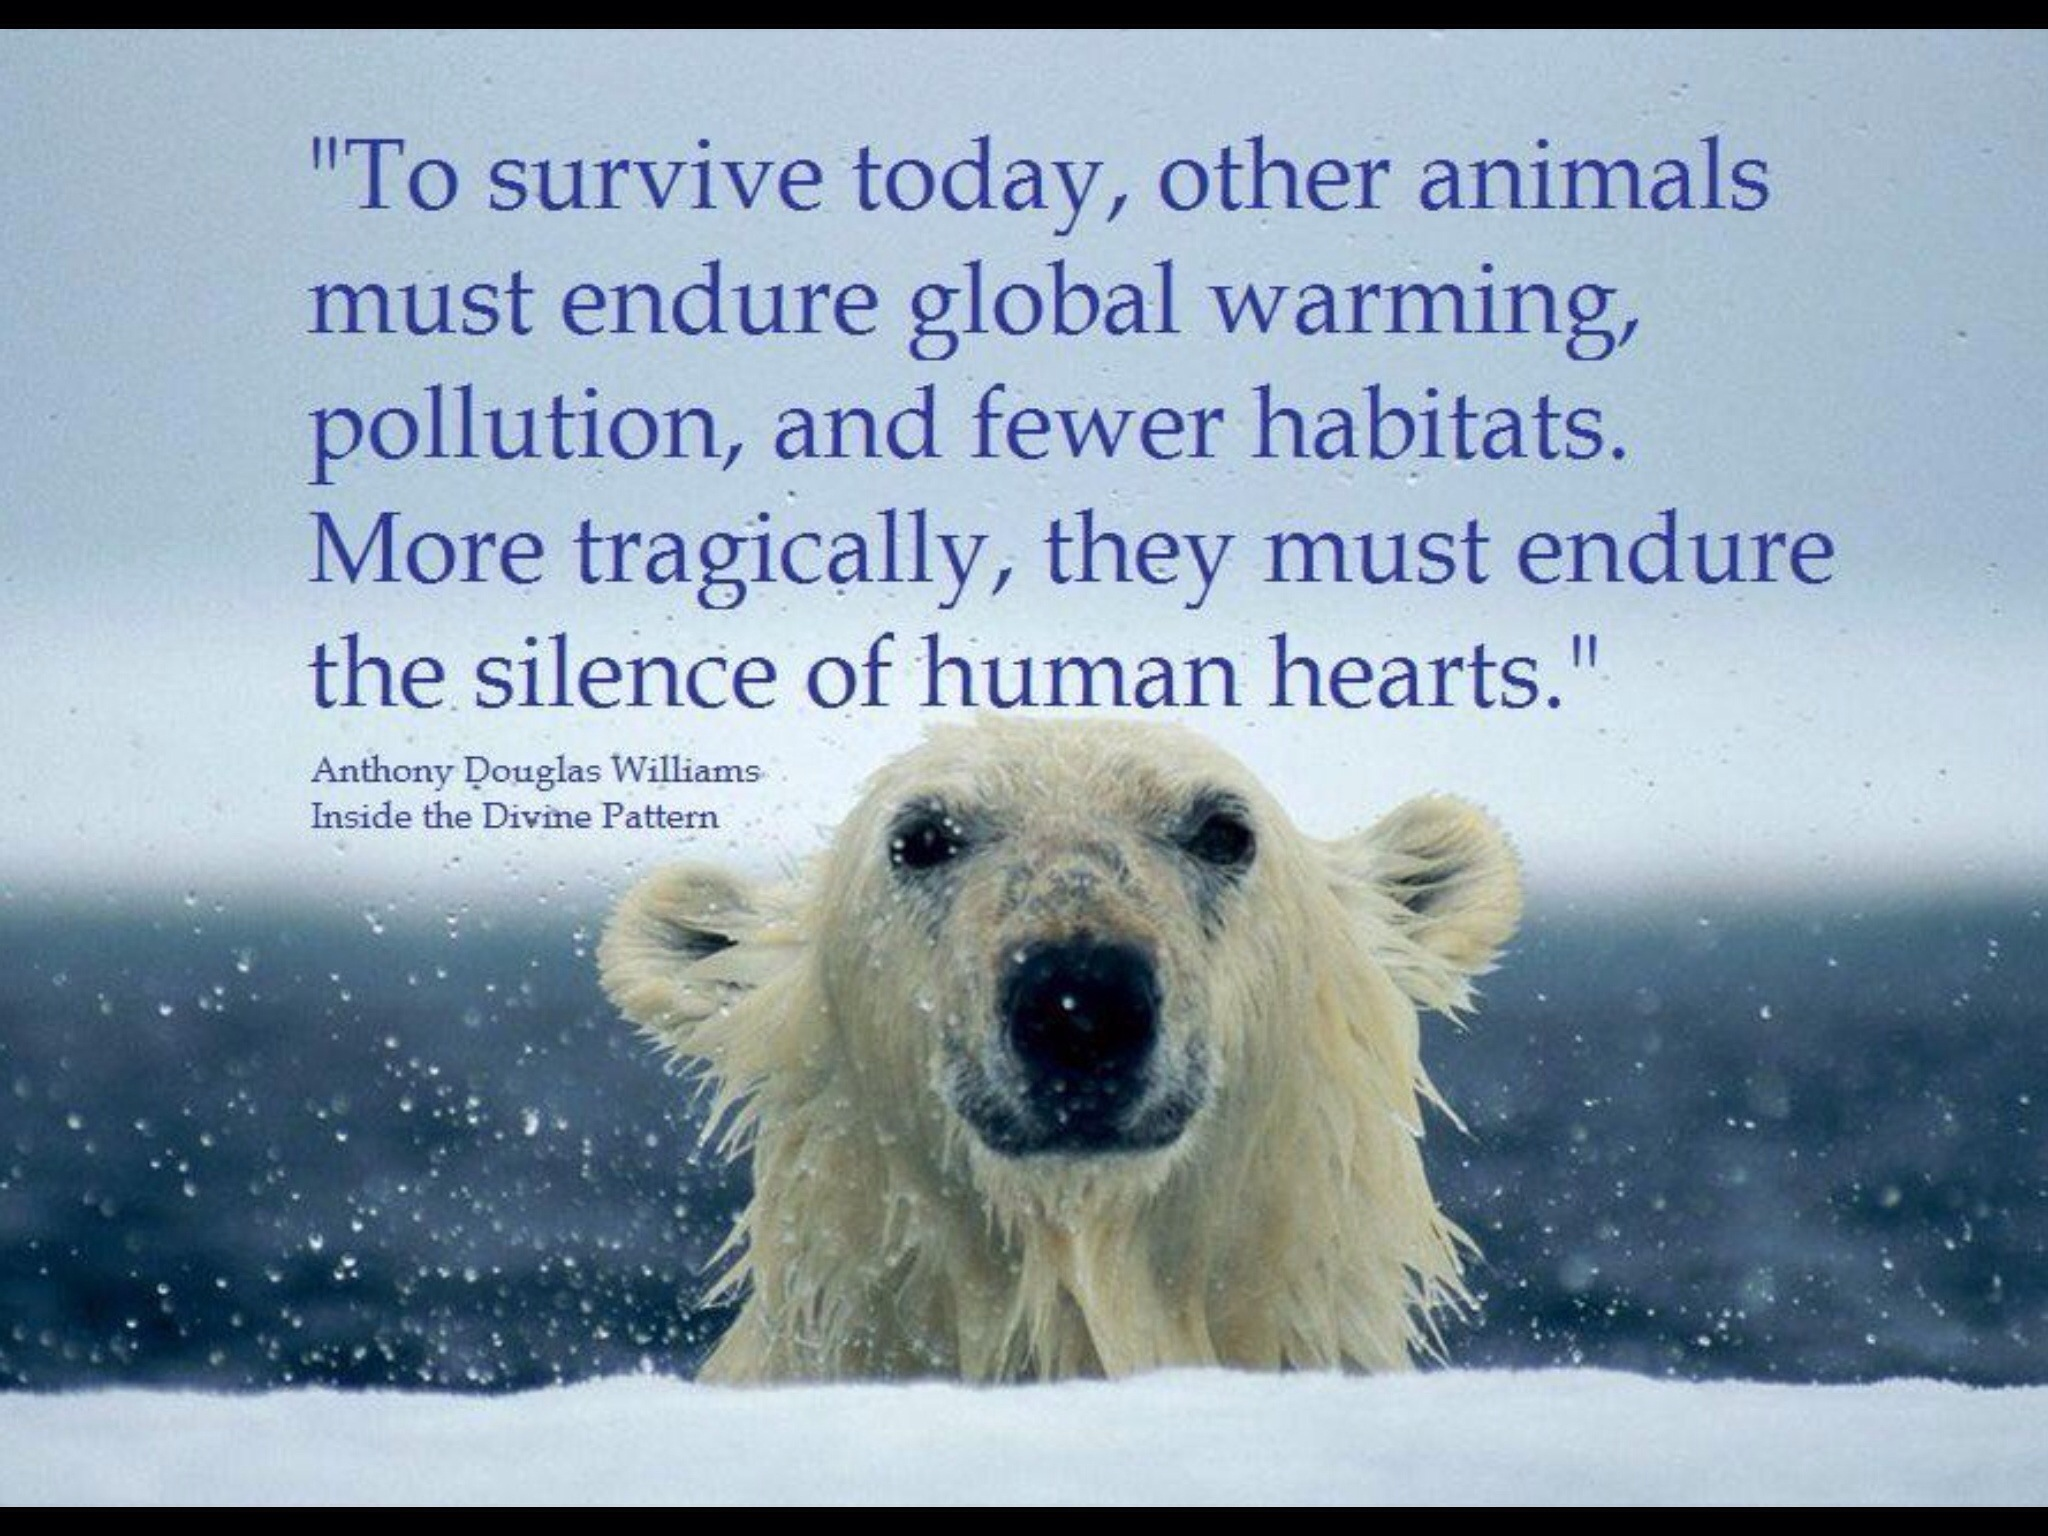 Global Warming Quotes Amusing Climate Changeraising Awarenessartisans Together.sterling